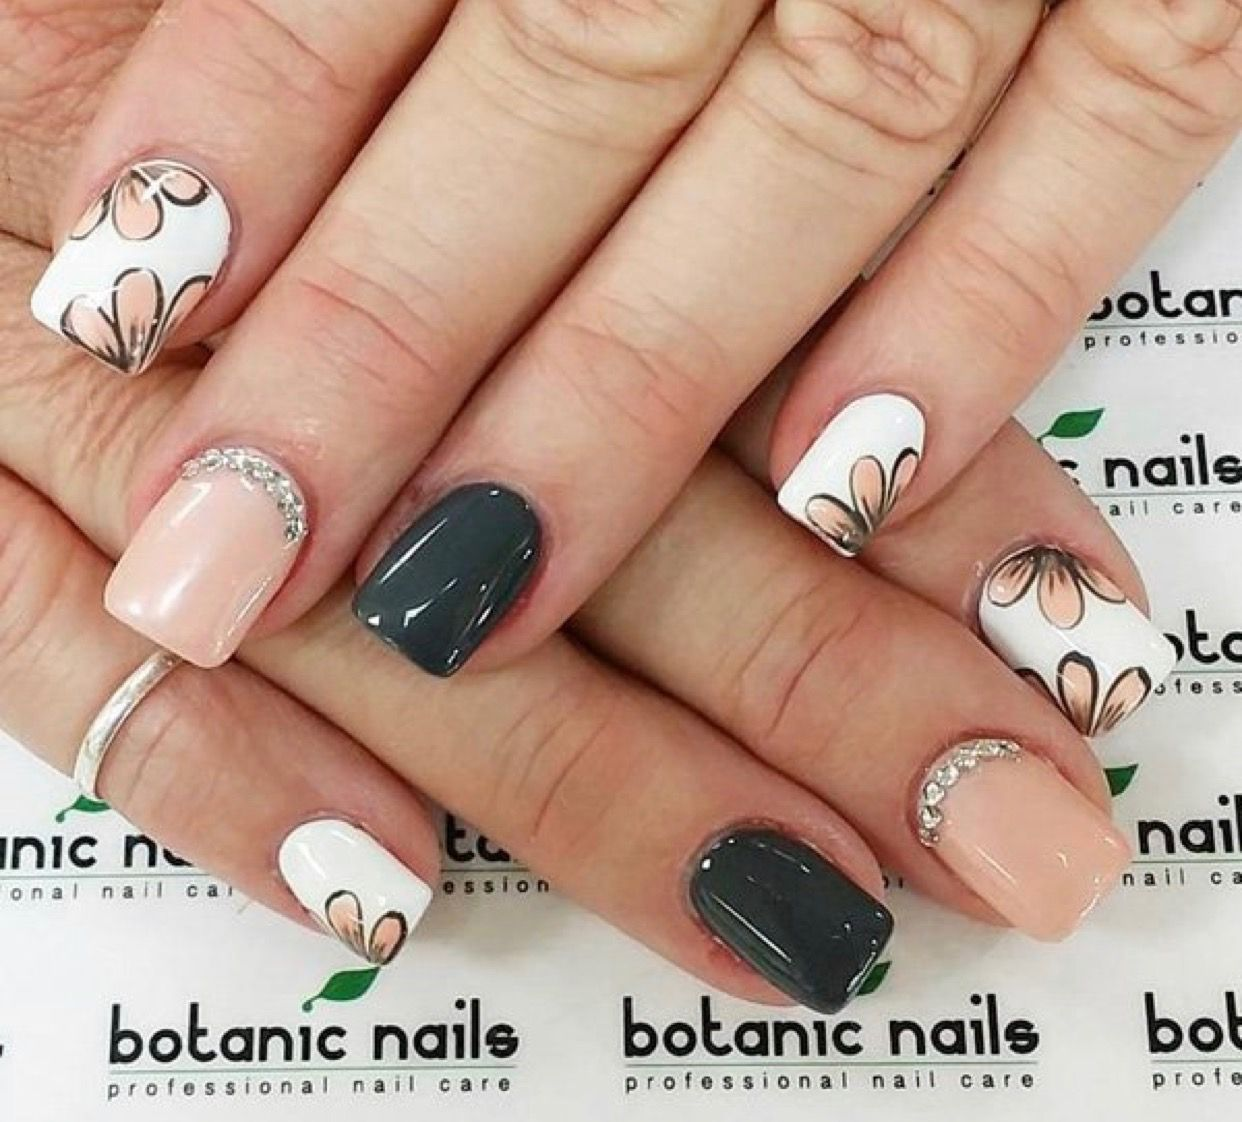 Pin by Leslie Thornton on Nail it! | Pinterest | Makeup